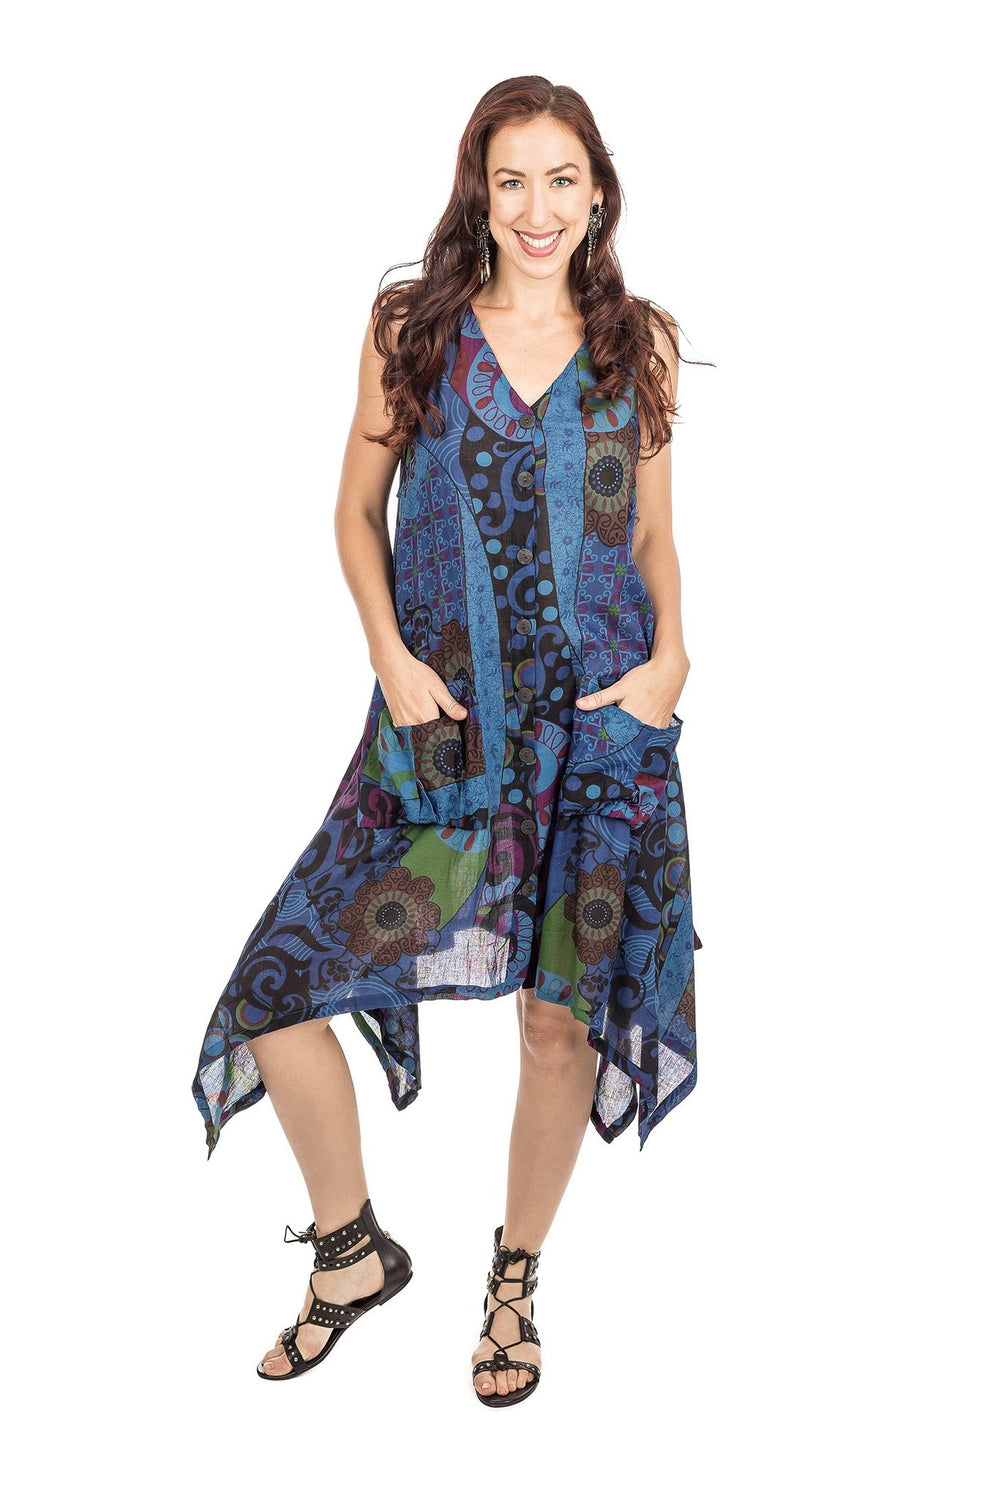 DRESS-COTTON PATCHWORK BLUE 218276